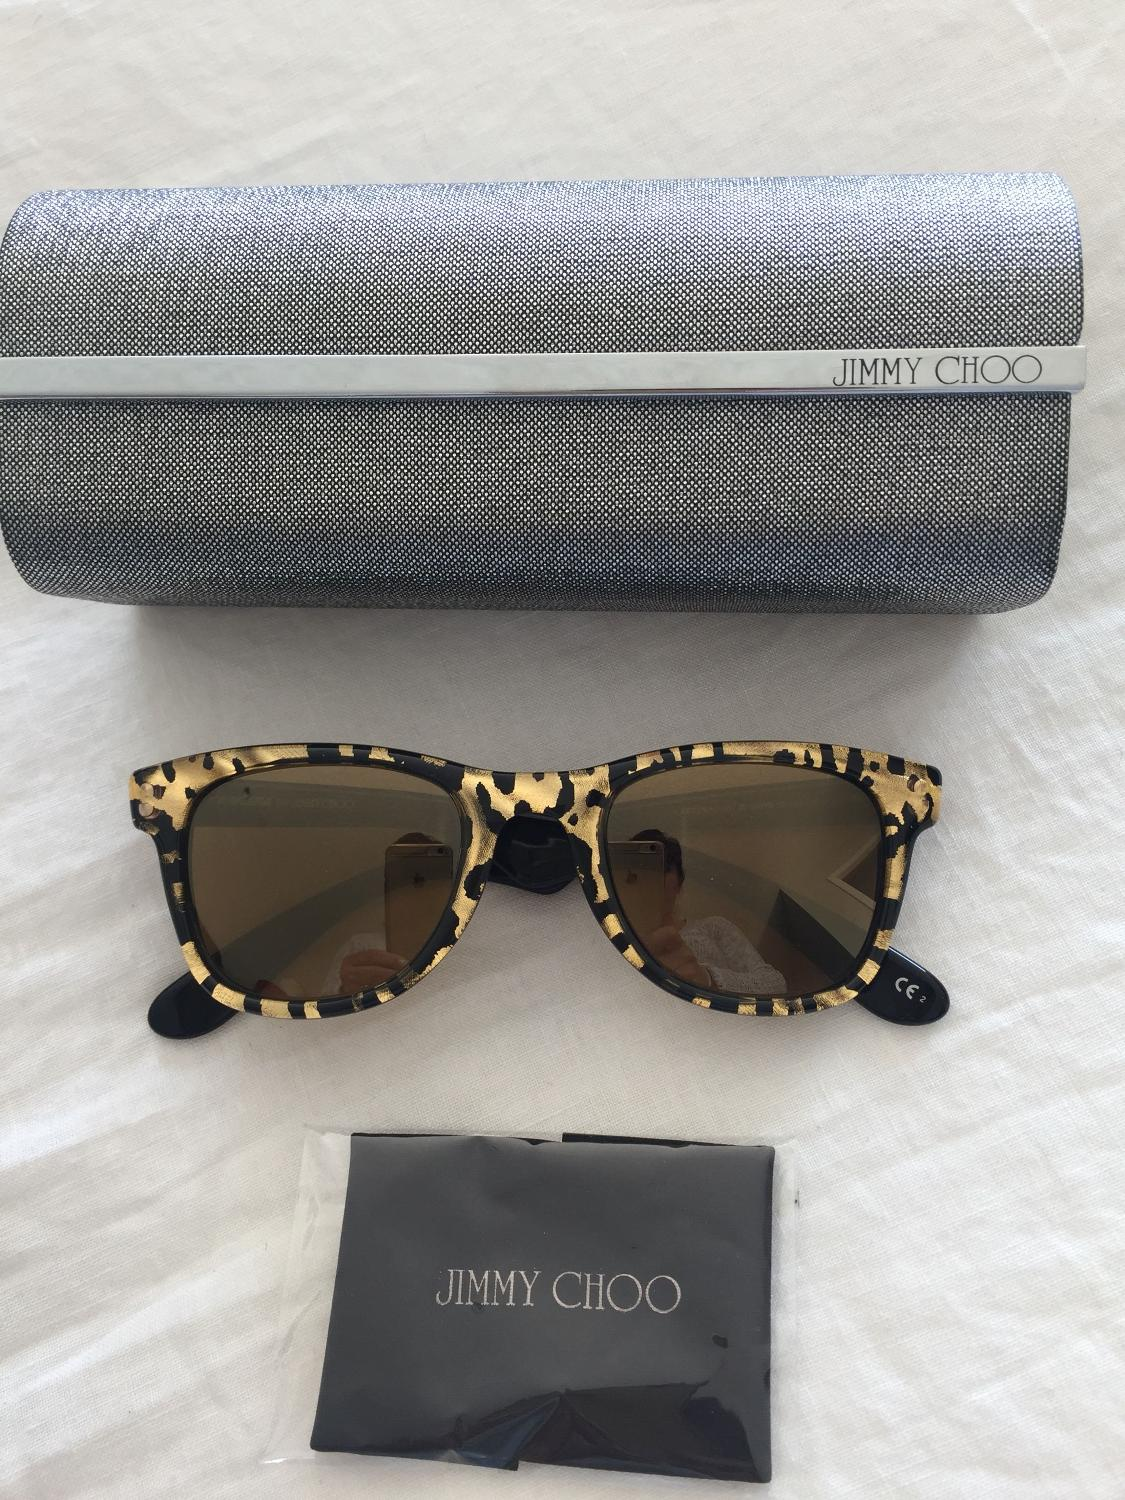 de7744d30666 Find more Jimmy Choo Sunglasses for sale at up to 90% off